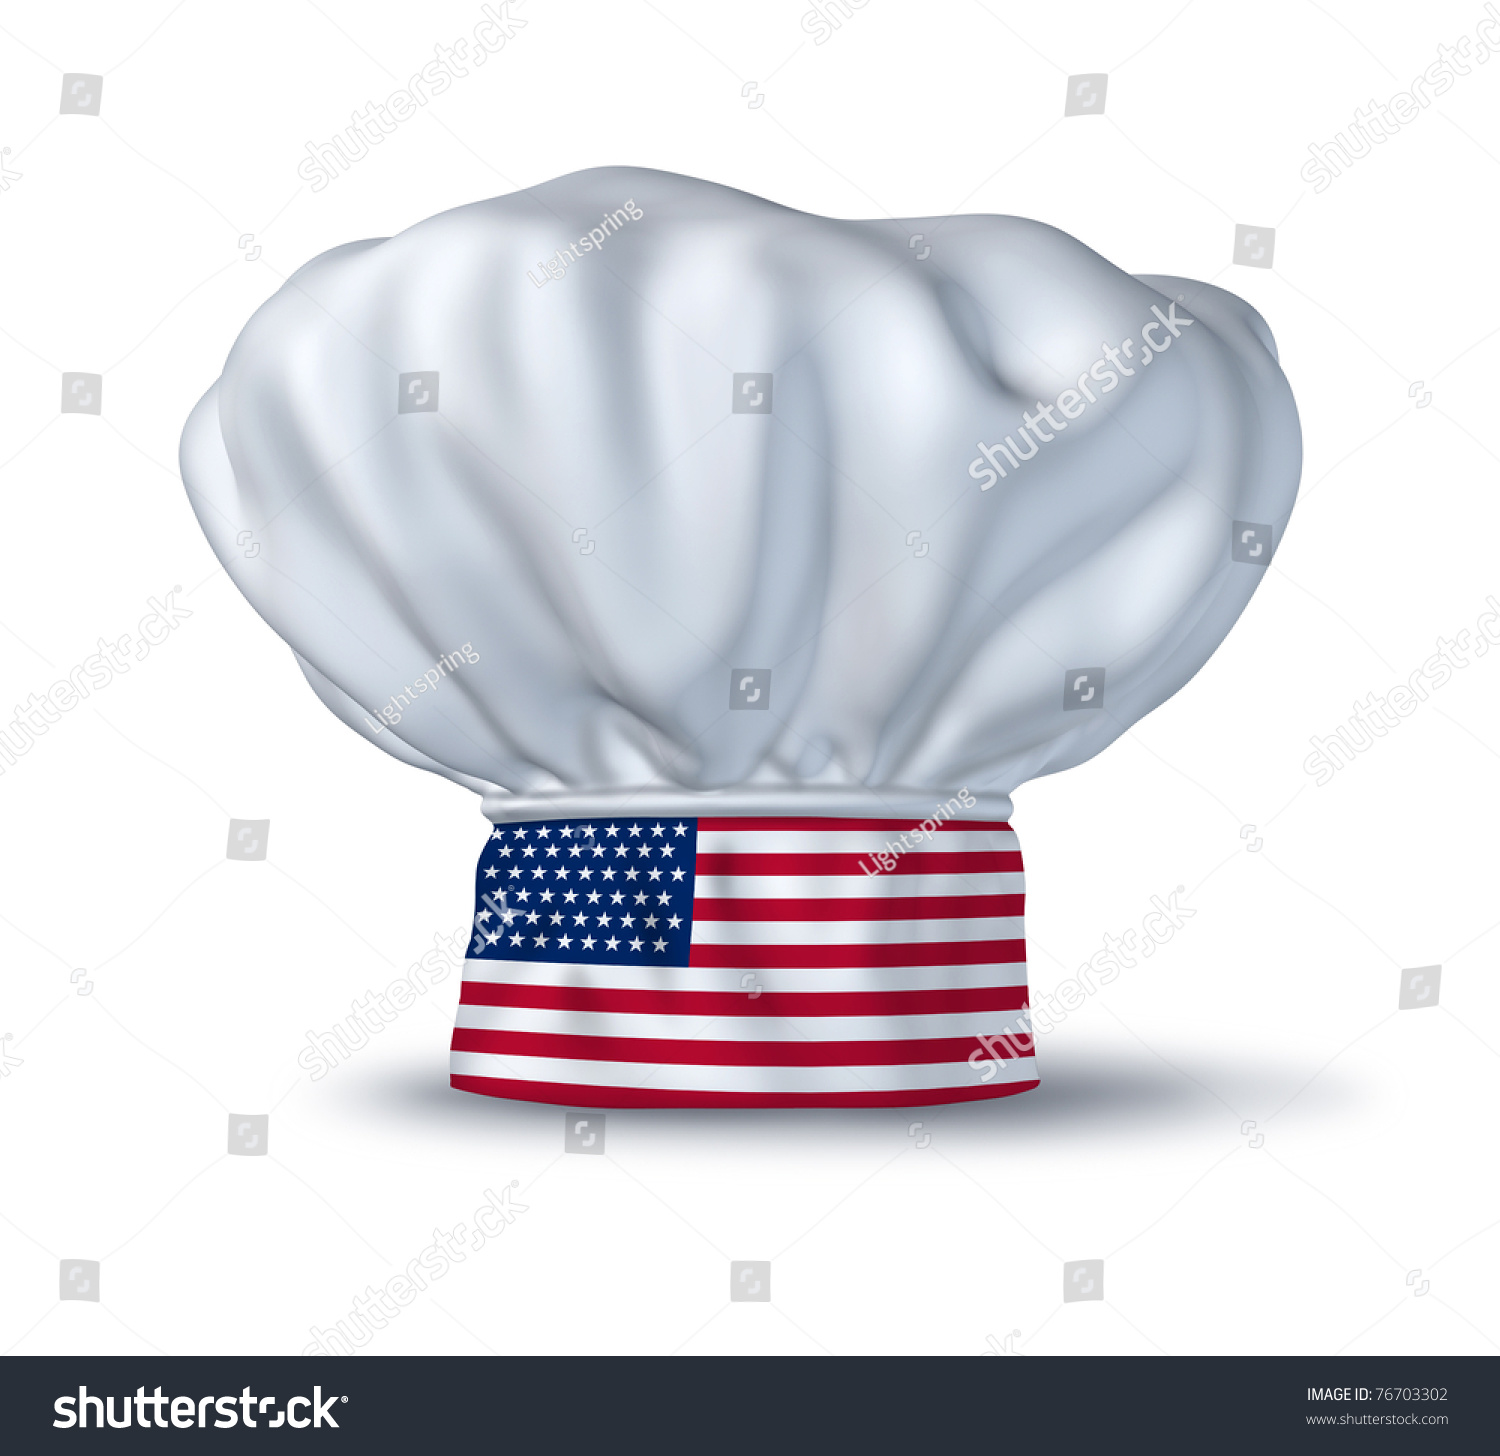 U S Cooking: American Cooking Symbol Represented By A Chef Hat With The